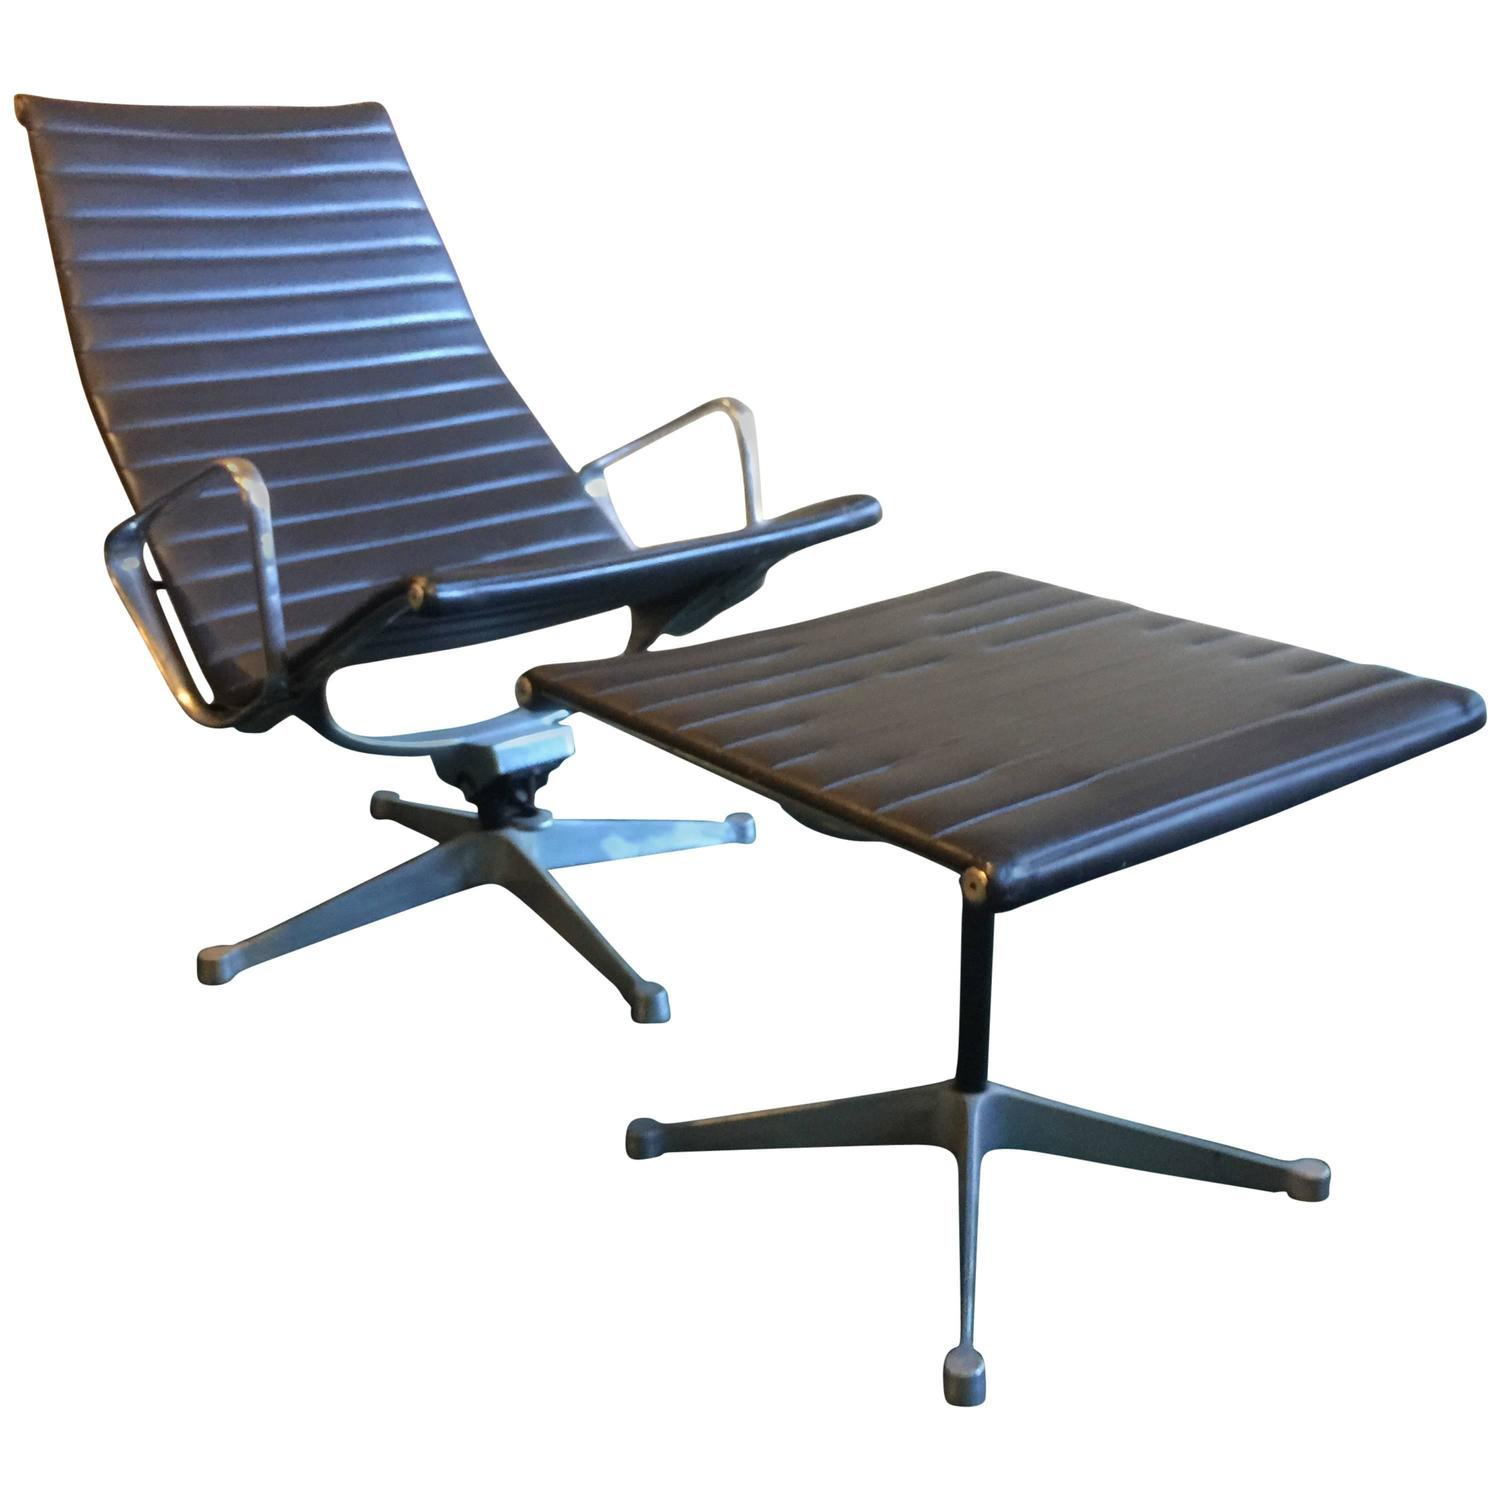 early vintage eames aluminum group lounge chair and ottoman for herman miller for sale at 1stdibs. Black Bedroom Furniture Sets. Home Design Ideas